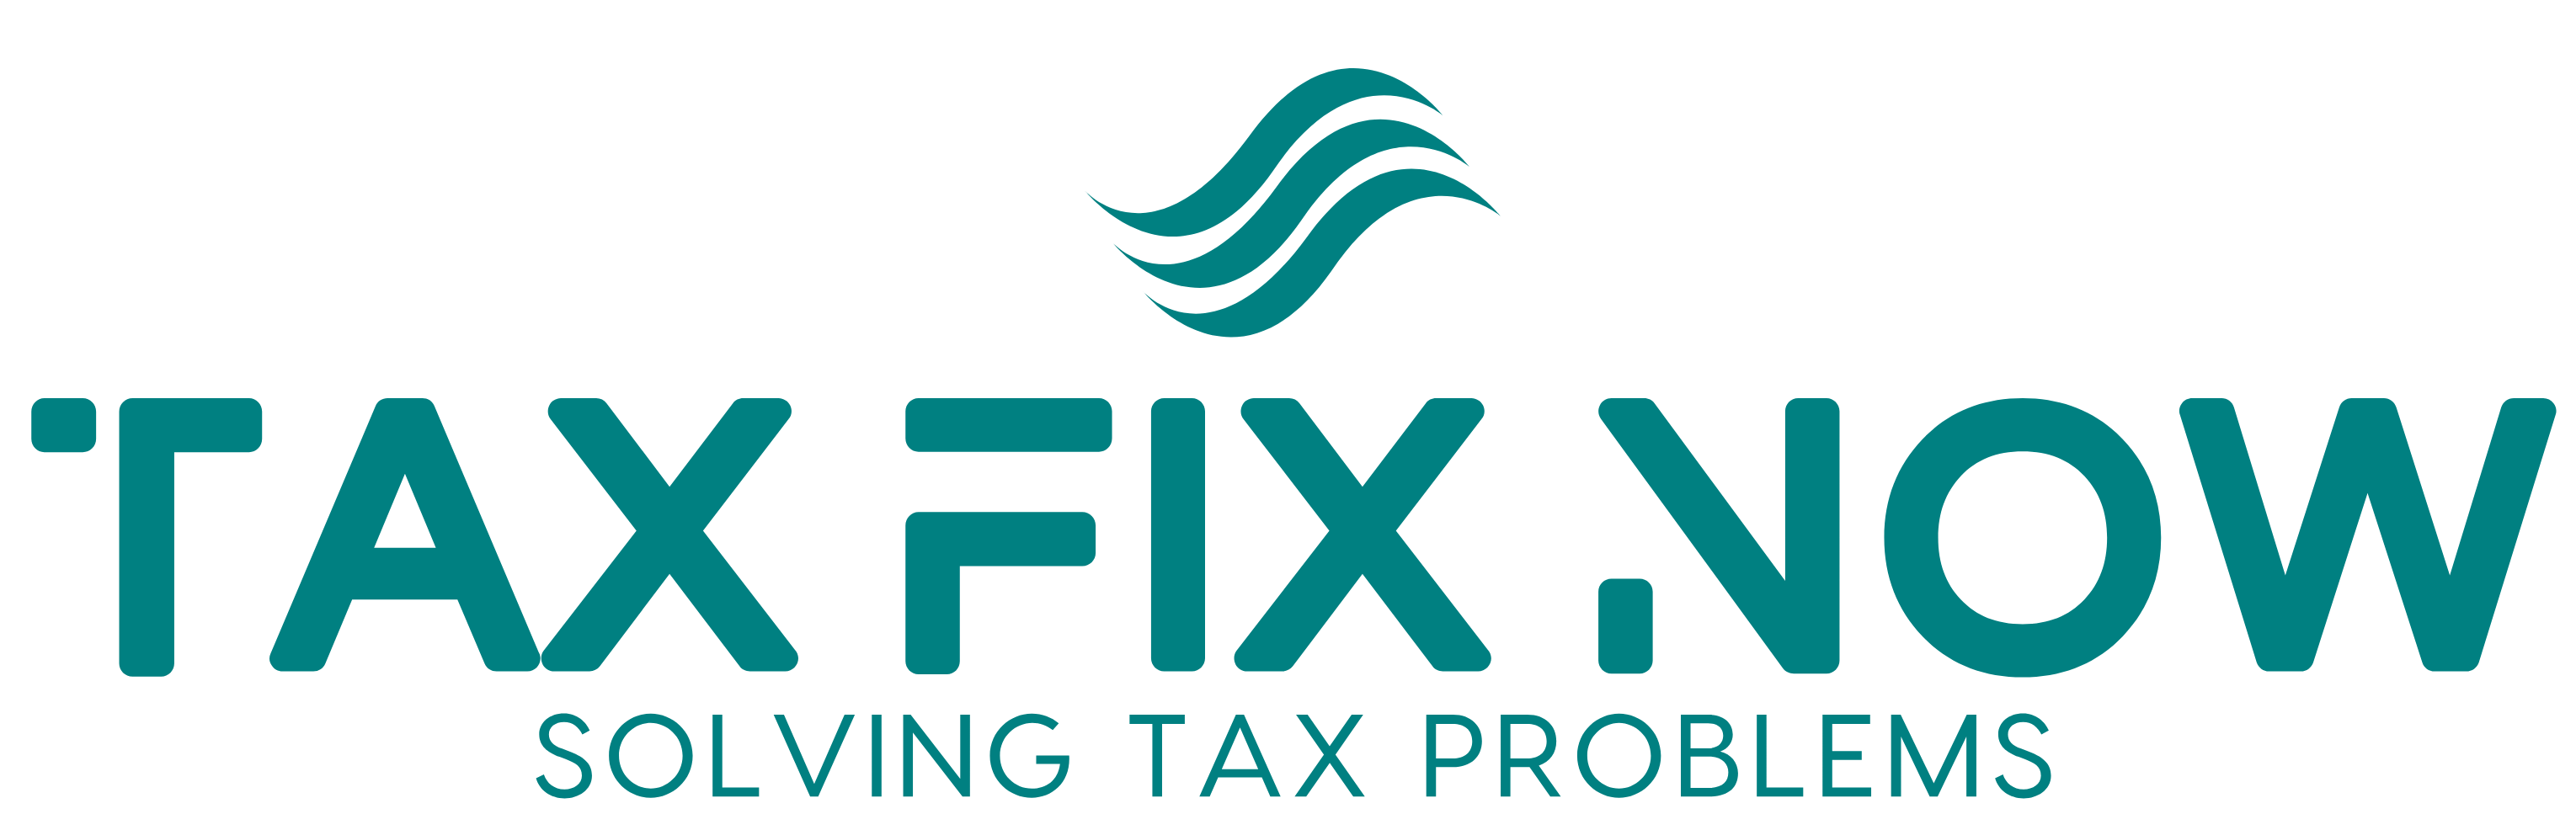 Highland Village, TX Bookkeeping Firm | Internet Links Page | Tax Fix Now